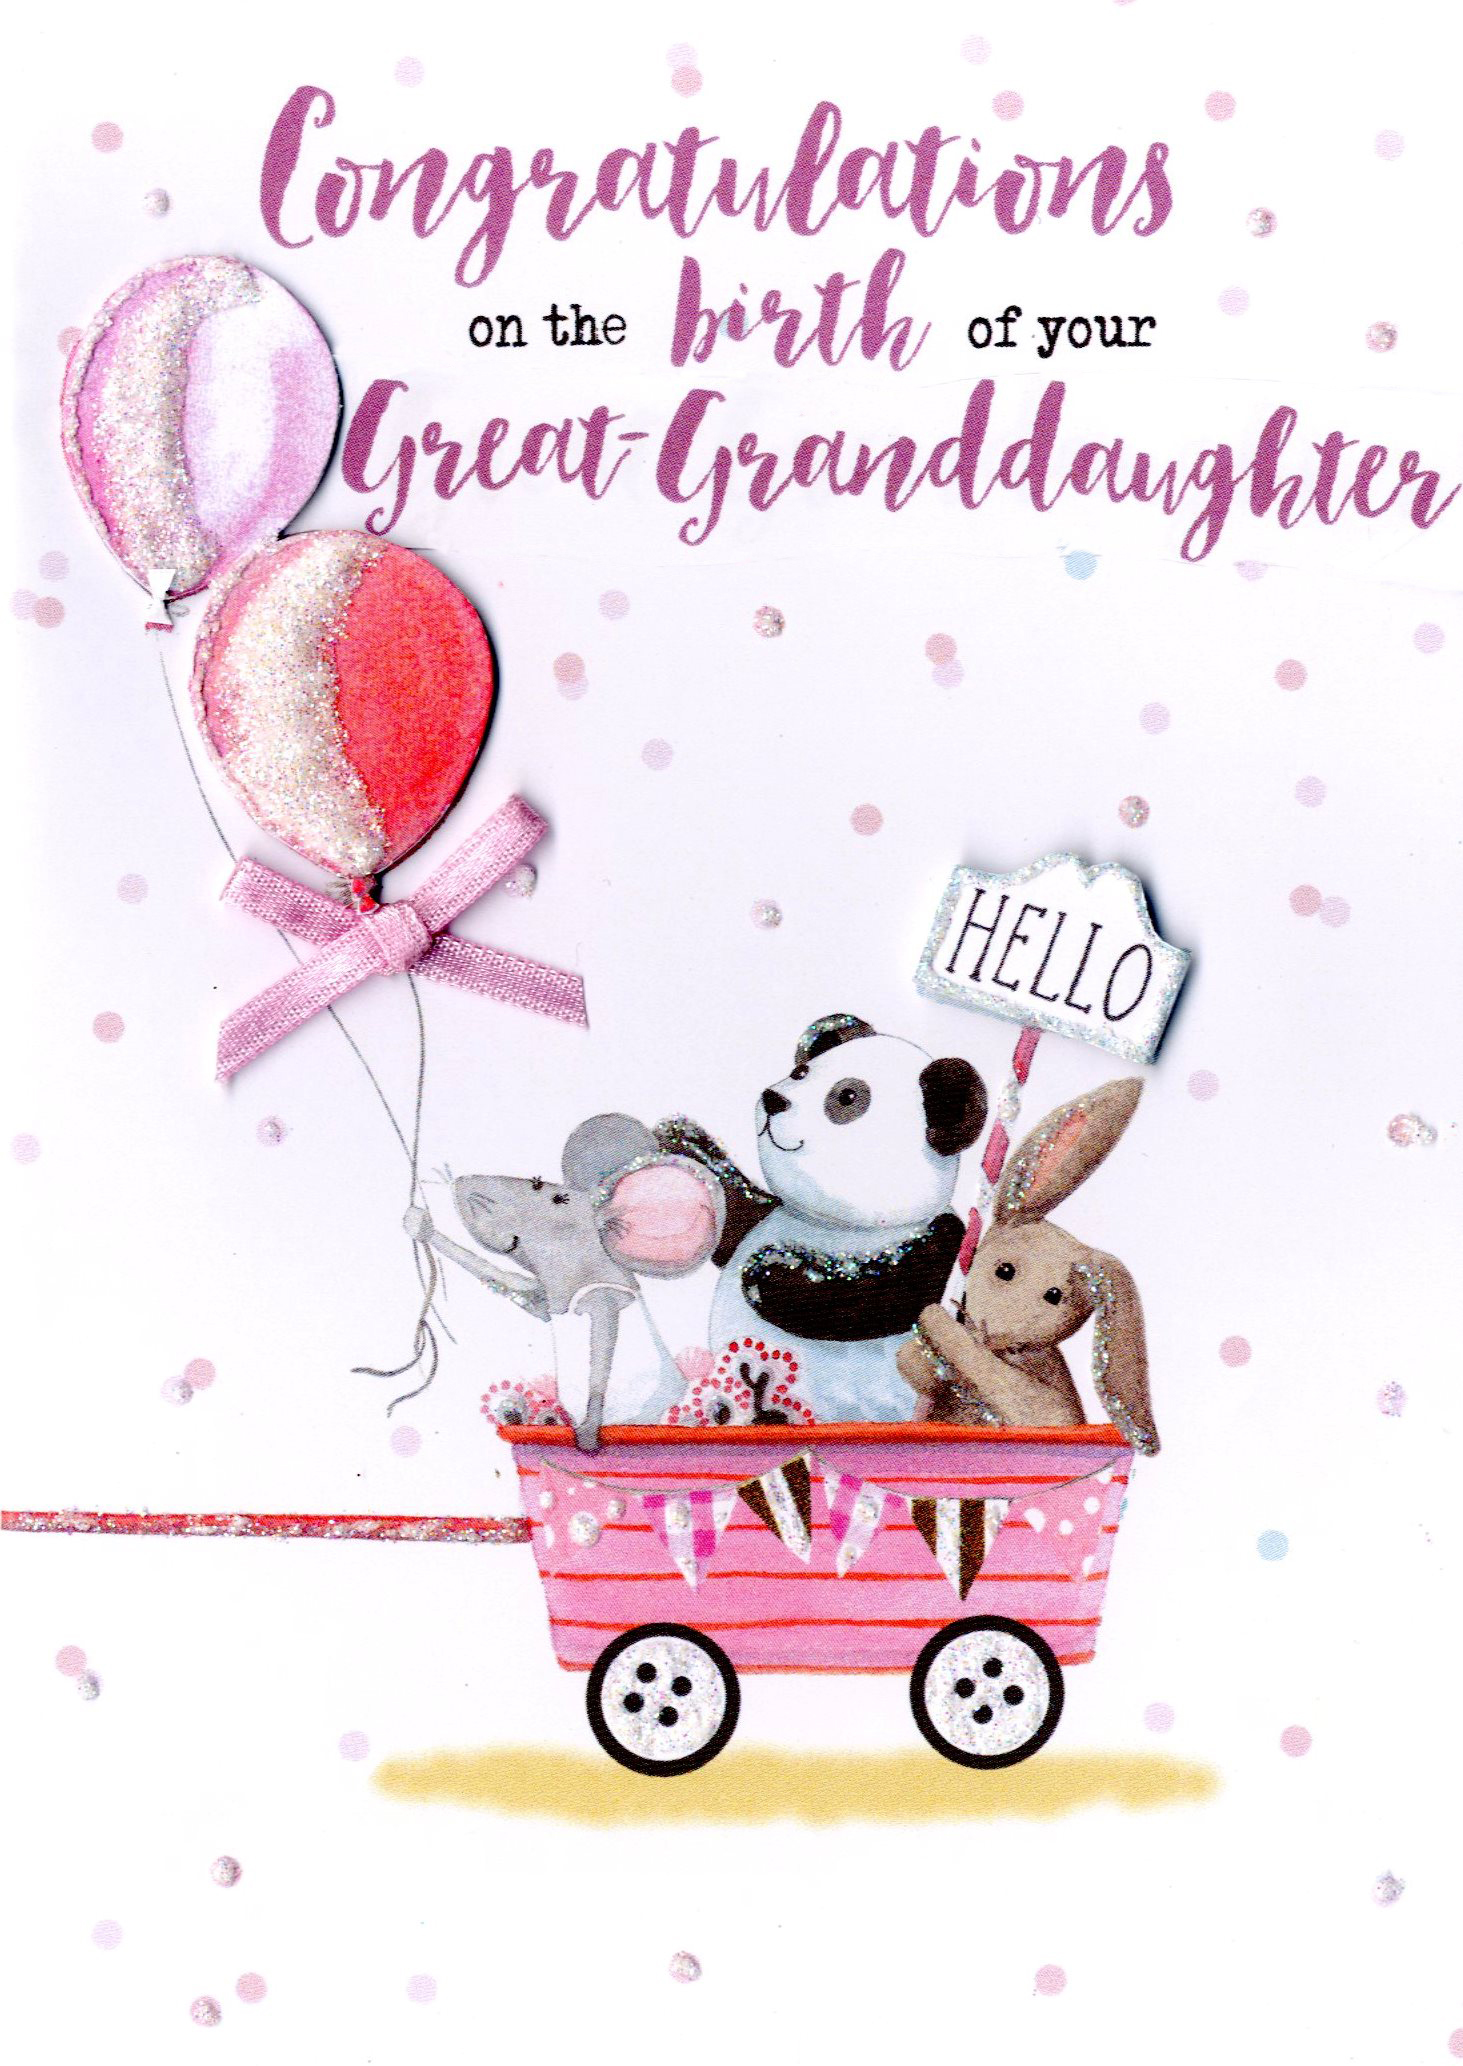 New Baby Great Granddaughter Greeting Card Cards Love Kates